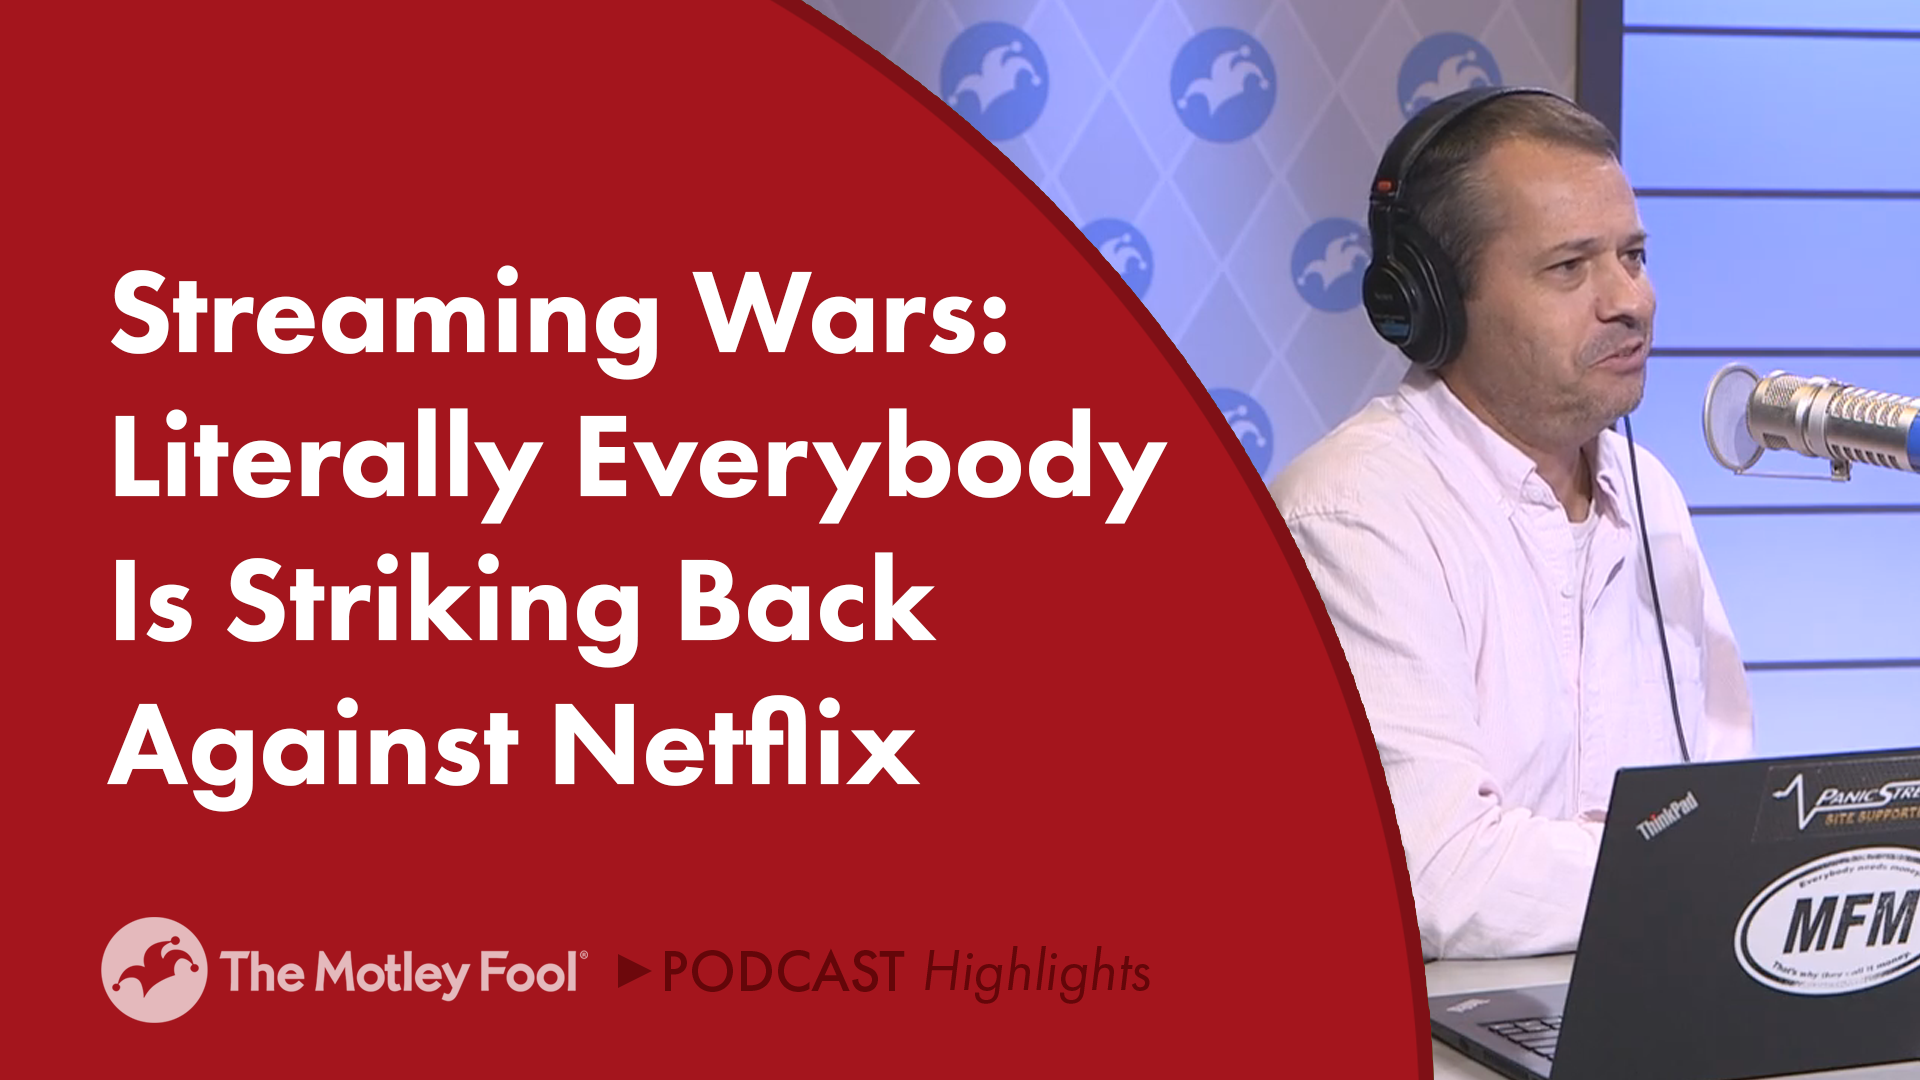 Streaming Wars: Literally Everybody Is Striking Back Against Netflix